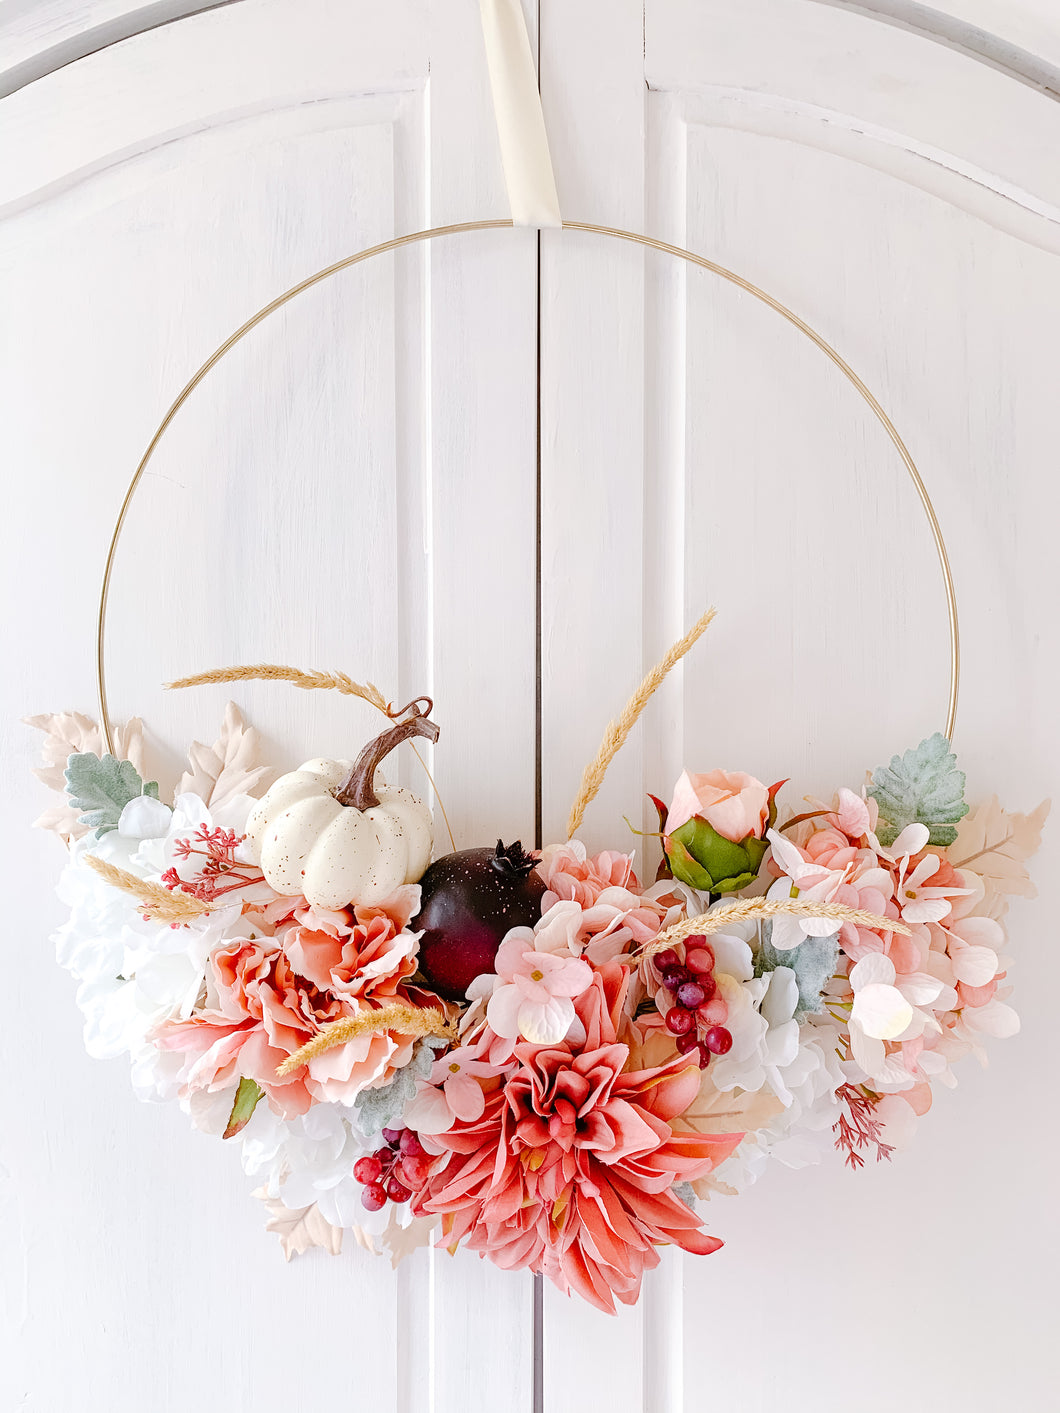 Harvest Wreath (Fall 2020)